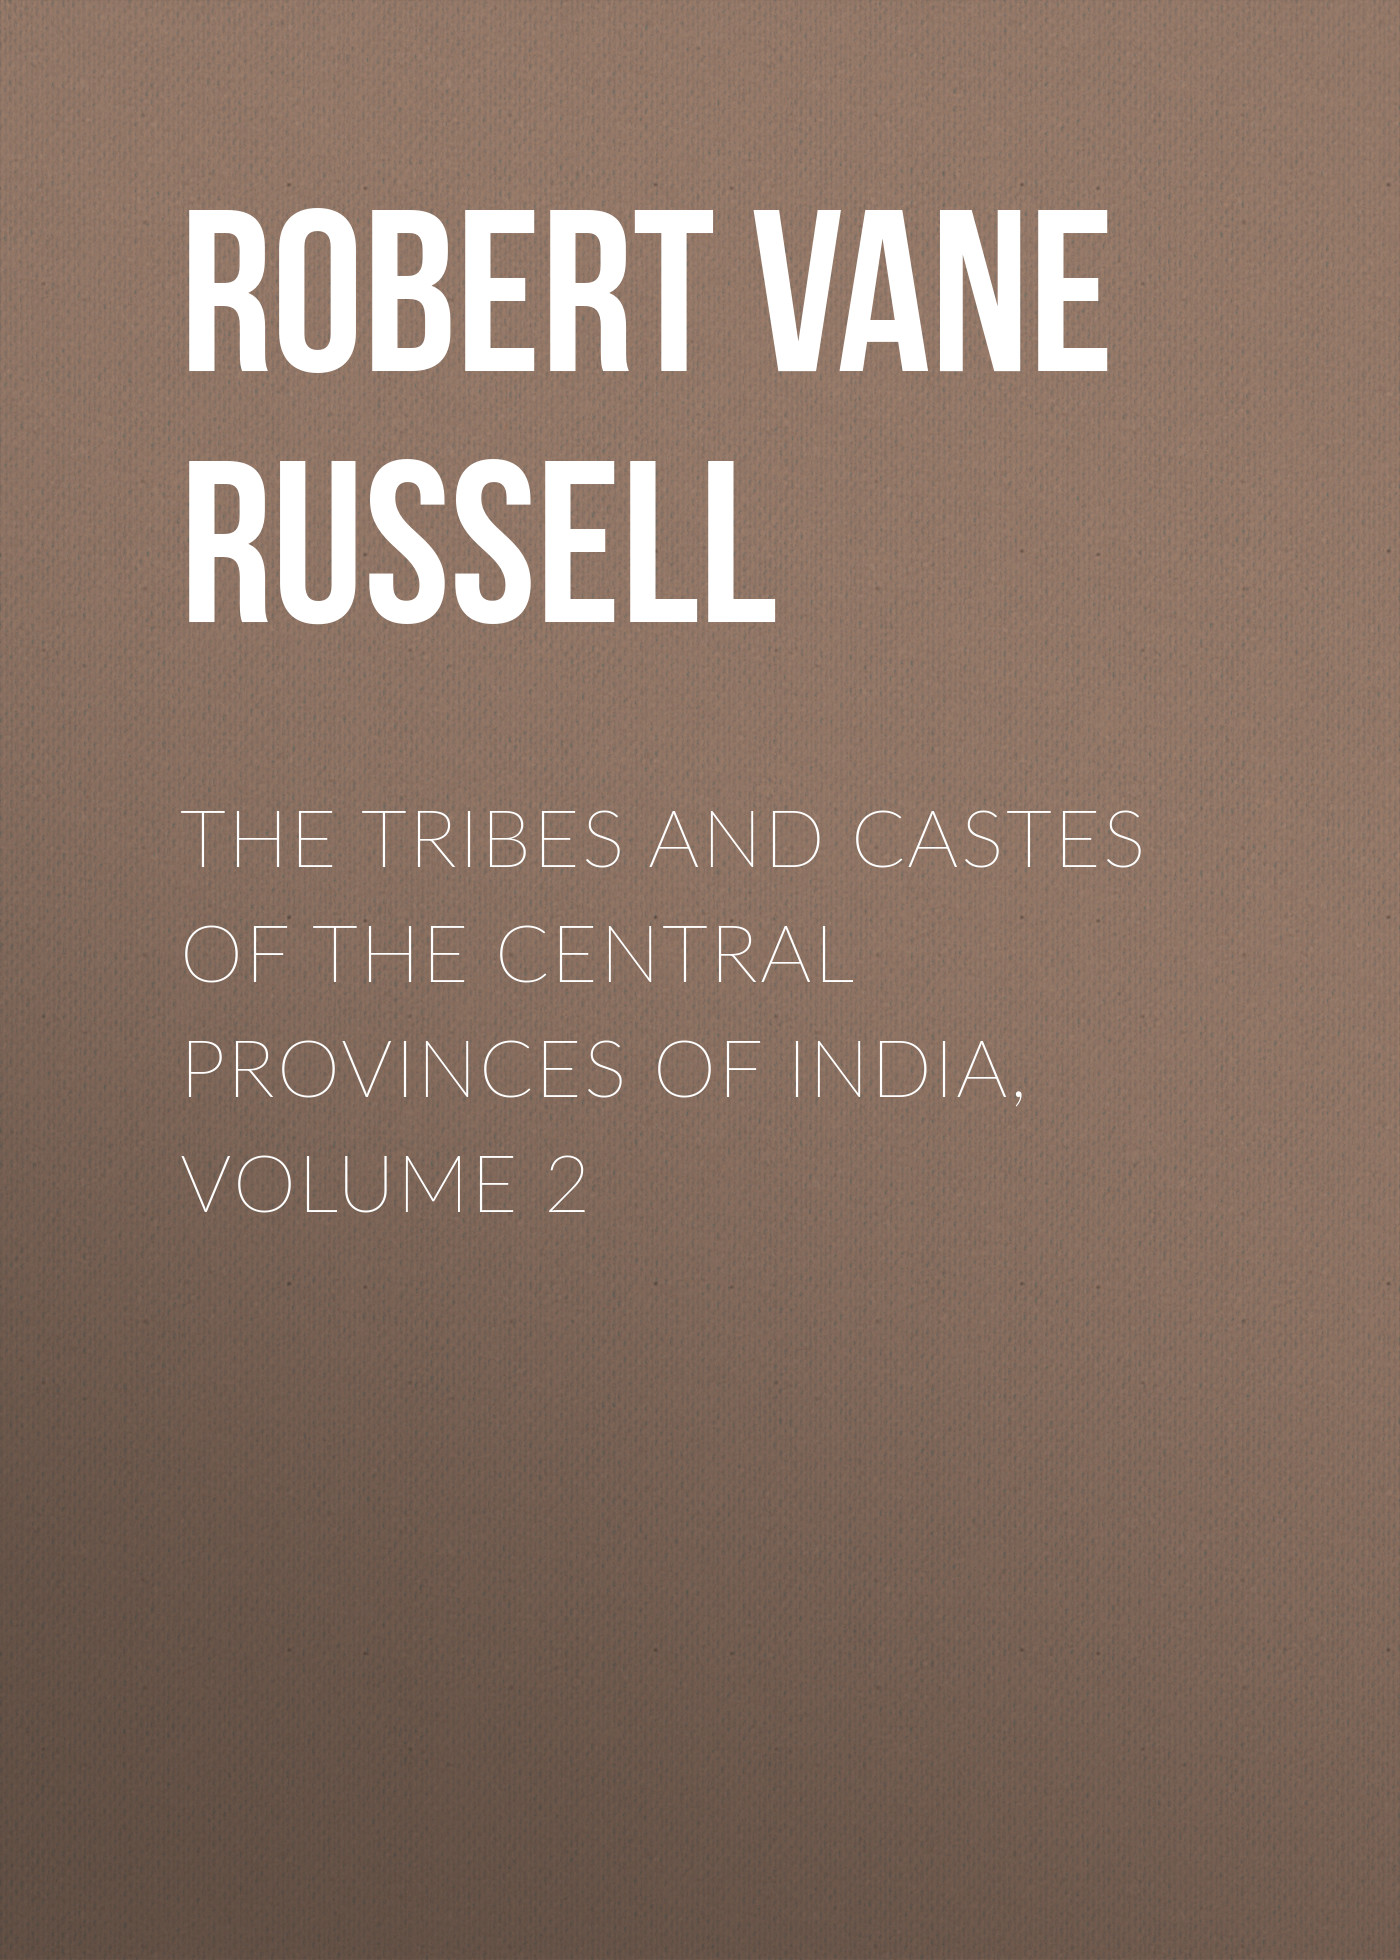 Robert Vane Russell The Tribes and Castes of the Central Provinces of India, Volume 2 earth 2 volume 2 the tower of fate